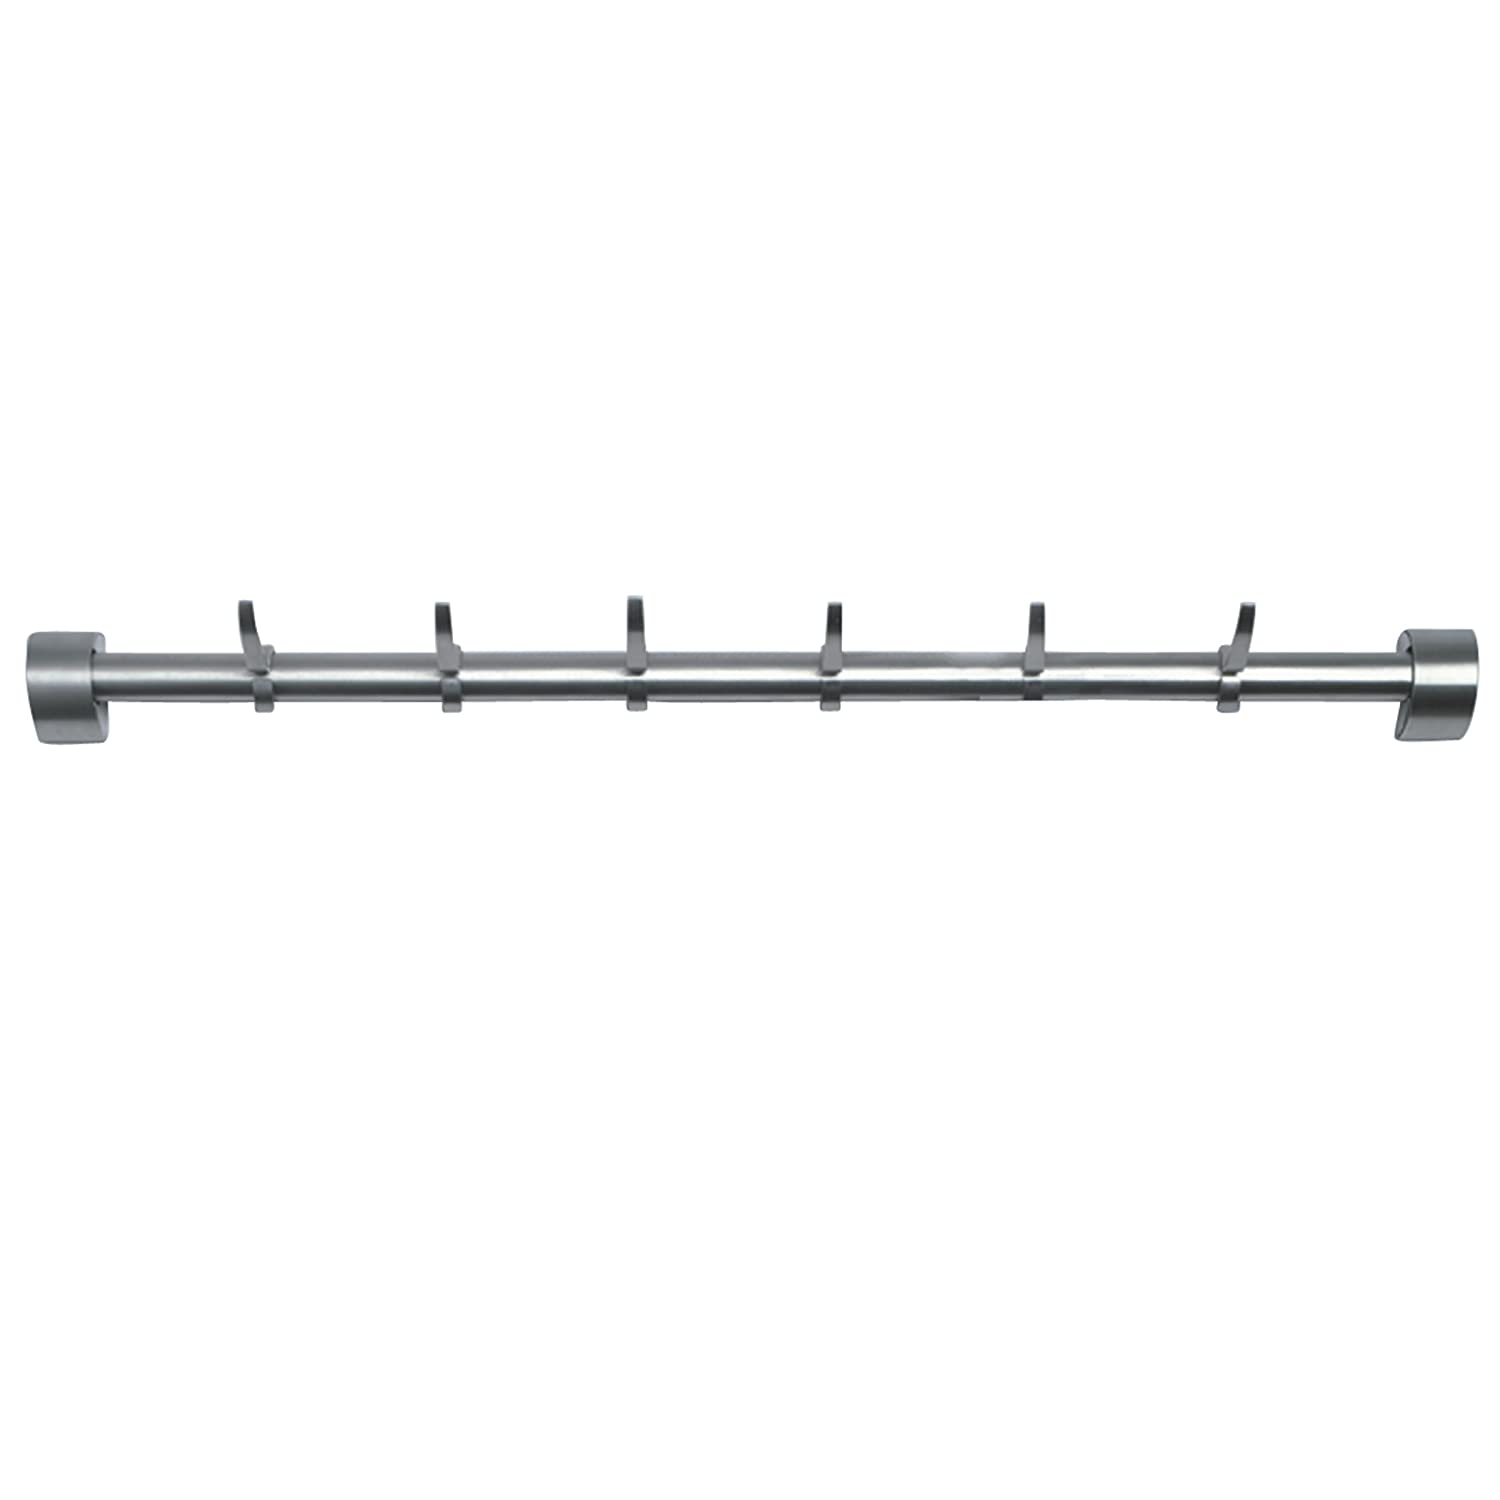 Oxo SteeL Kitchen Tool and Utensil Rack OXO Cook's Tools 59981